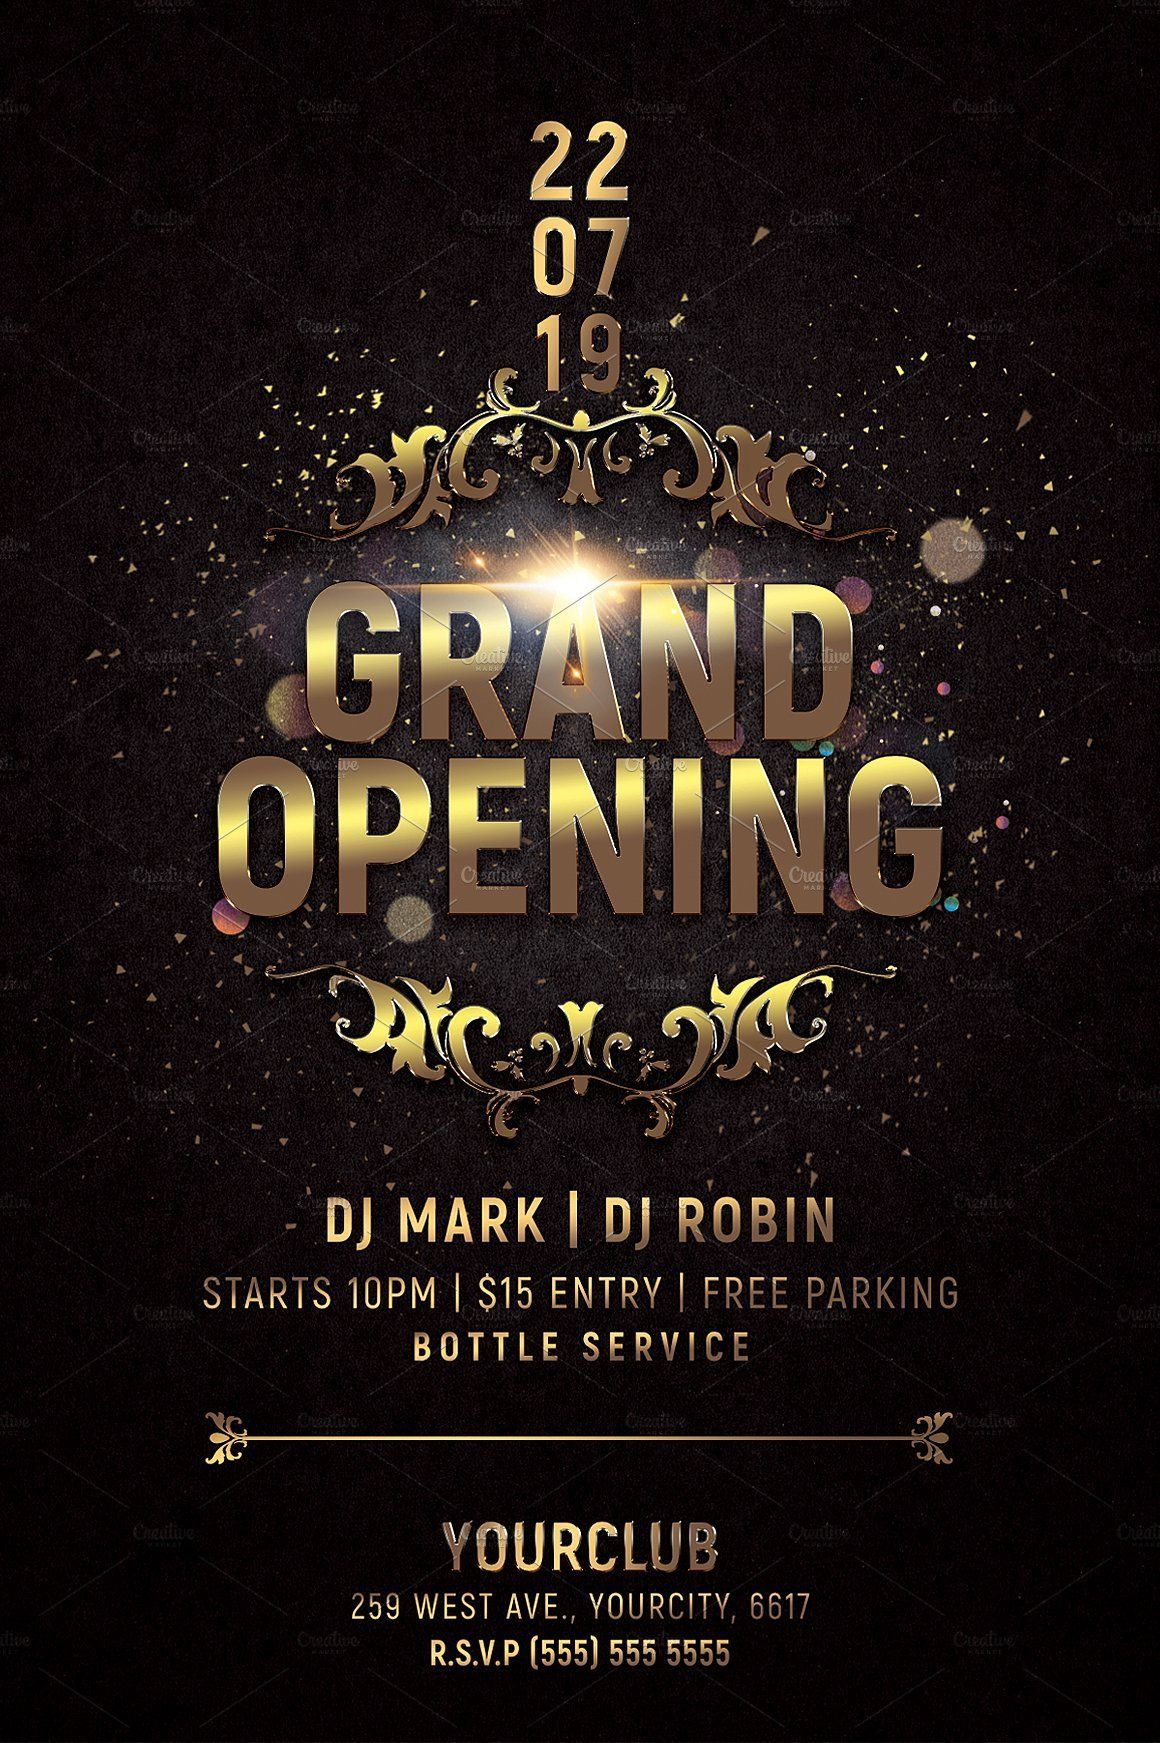 000 Awesome Grand Opening Flyer Template Free Image  RestaurantFull